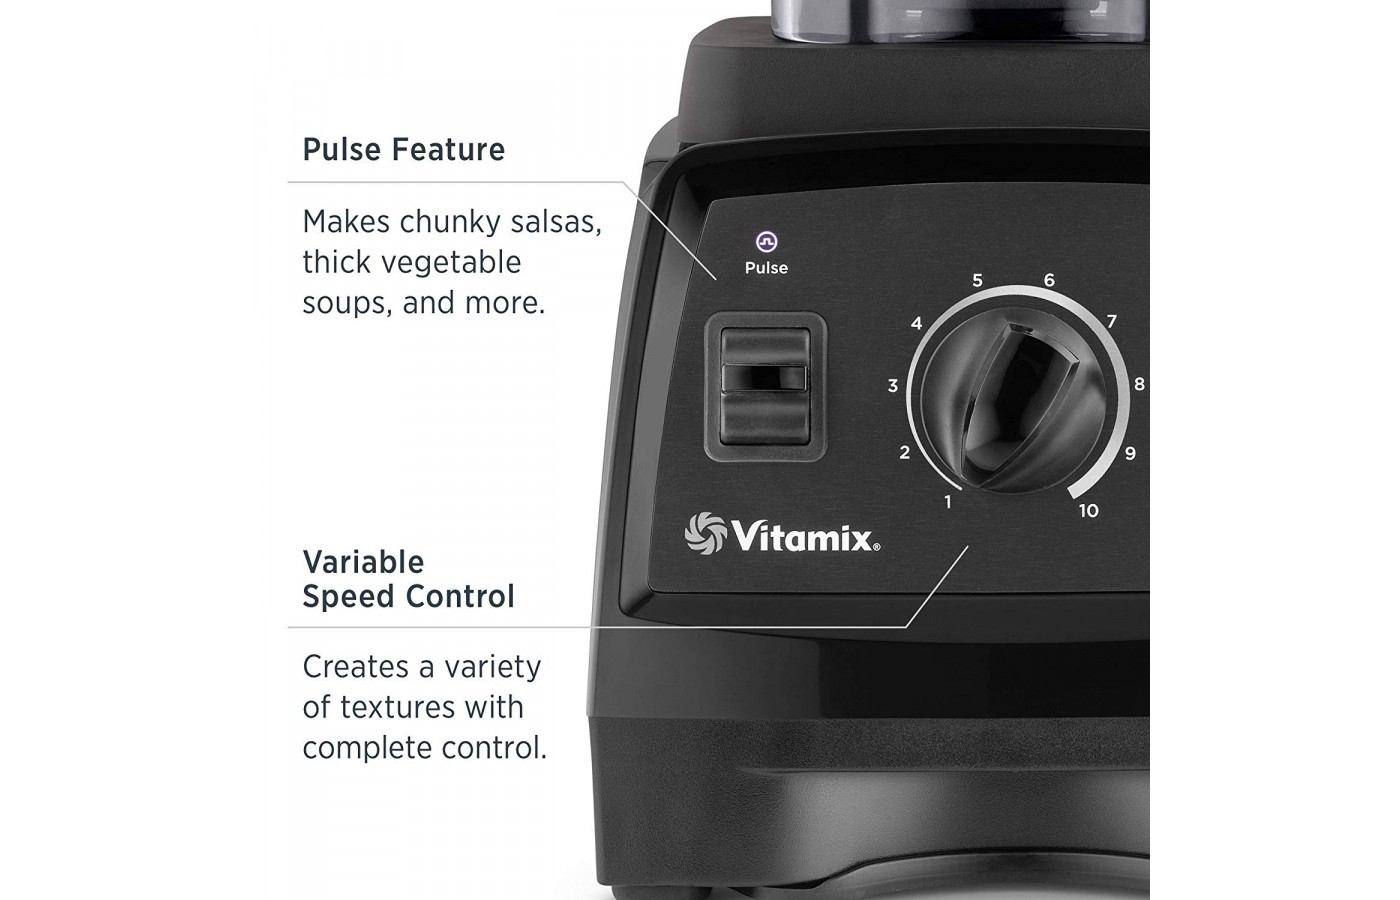 There are also ten speeds and a pulse button for manual use to speed up or down